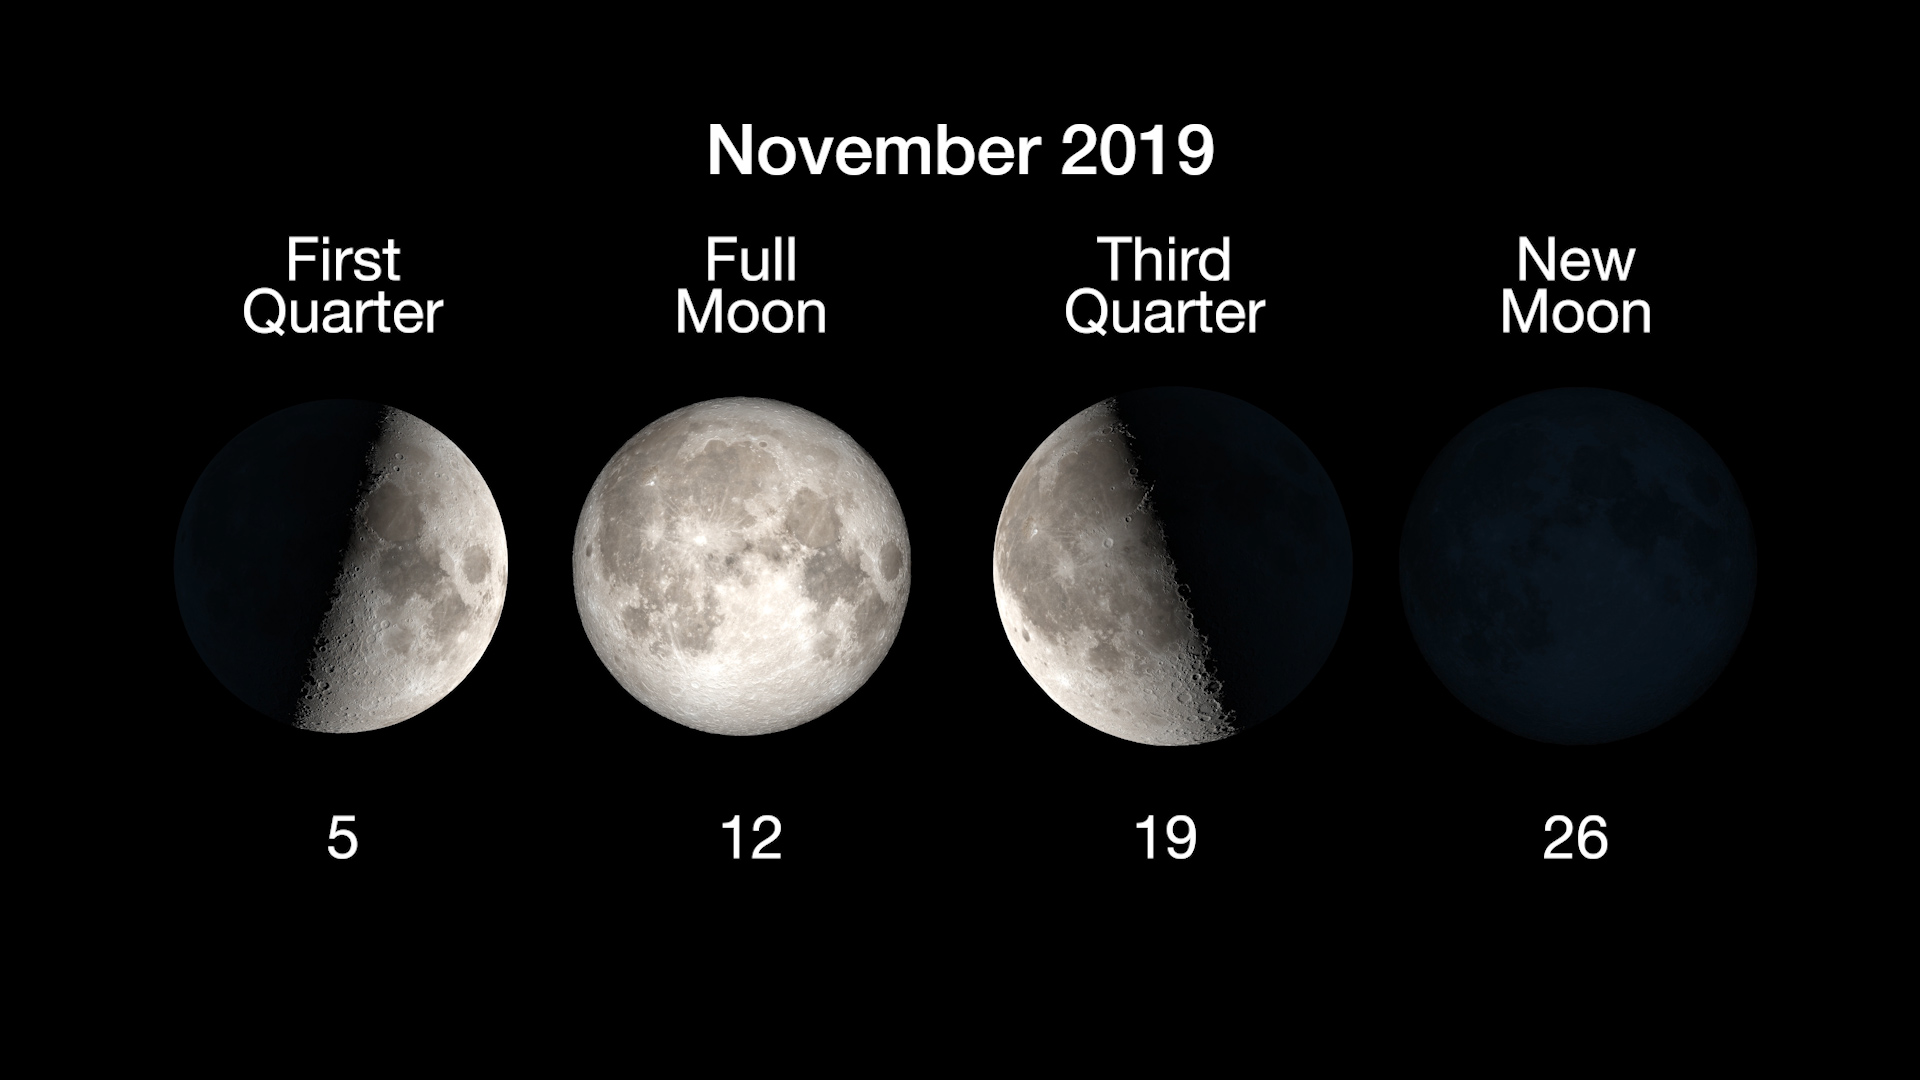 Phases of the Moon for November: 1st quarter, Nov/ 5